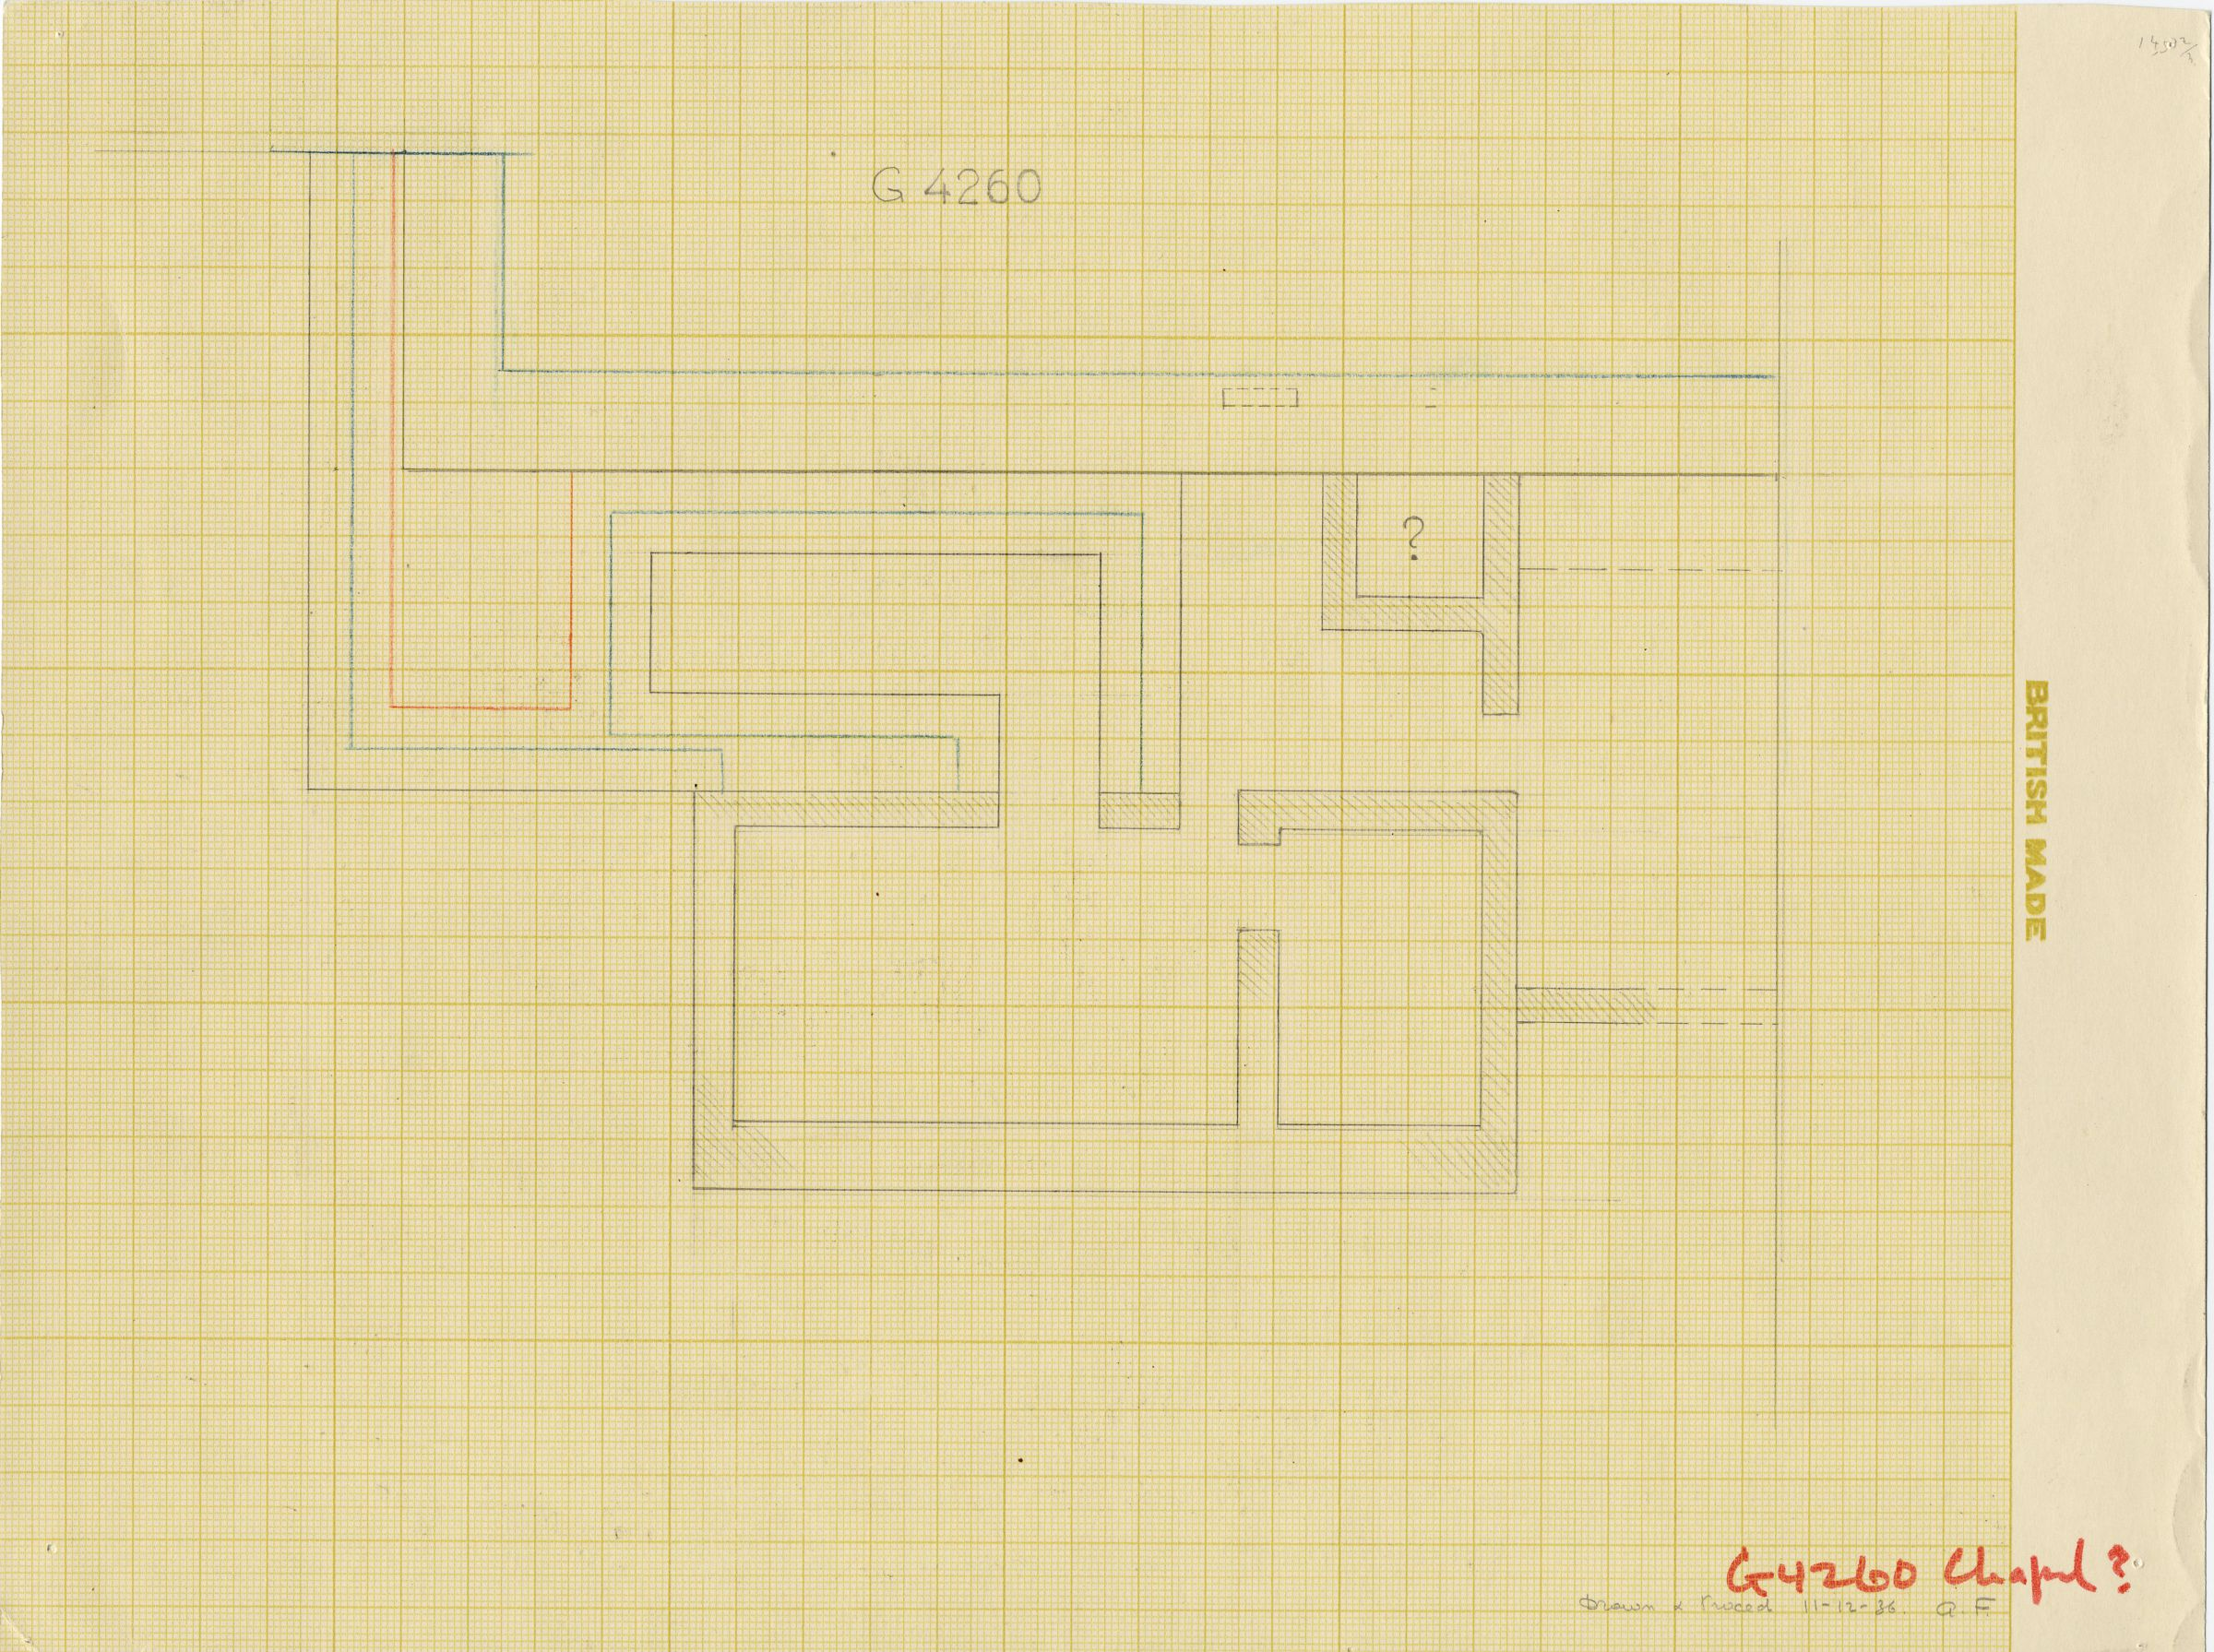 Maps and plans: G 4260, Plan of chapel